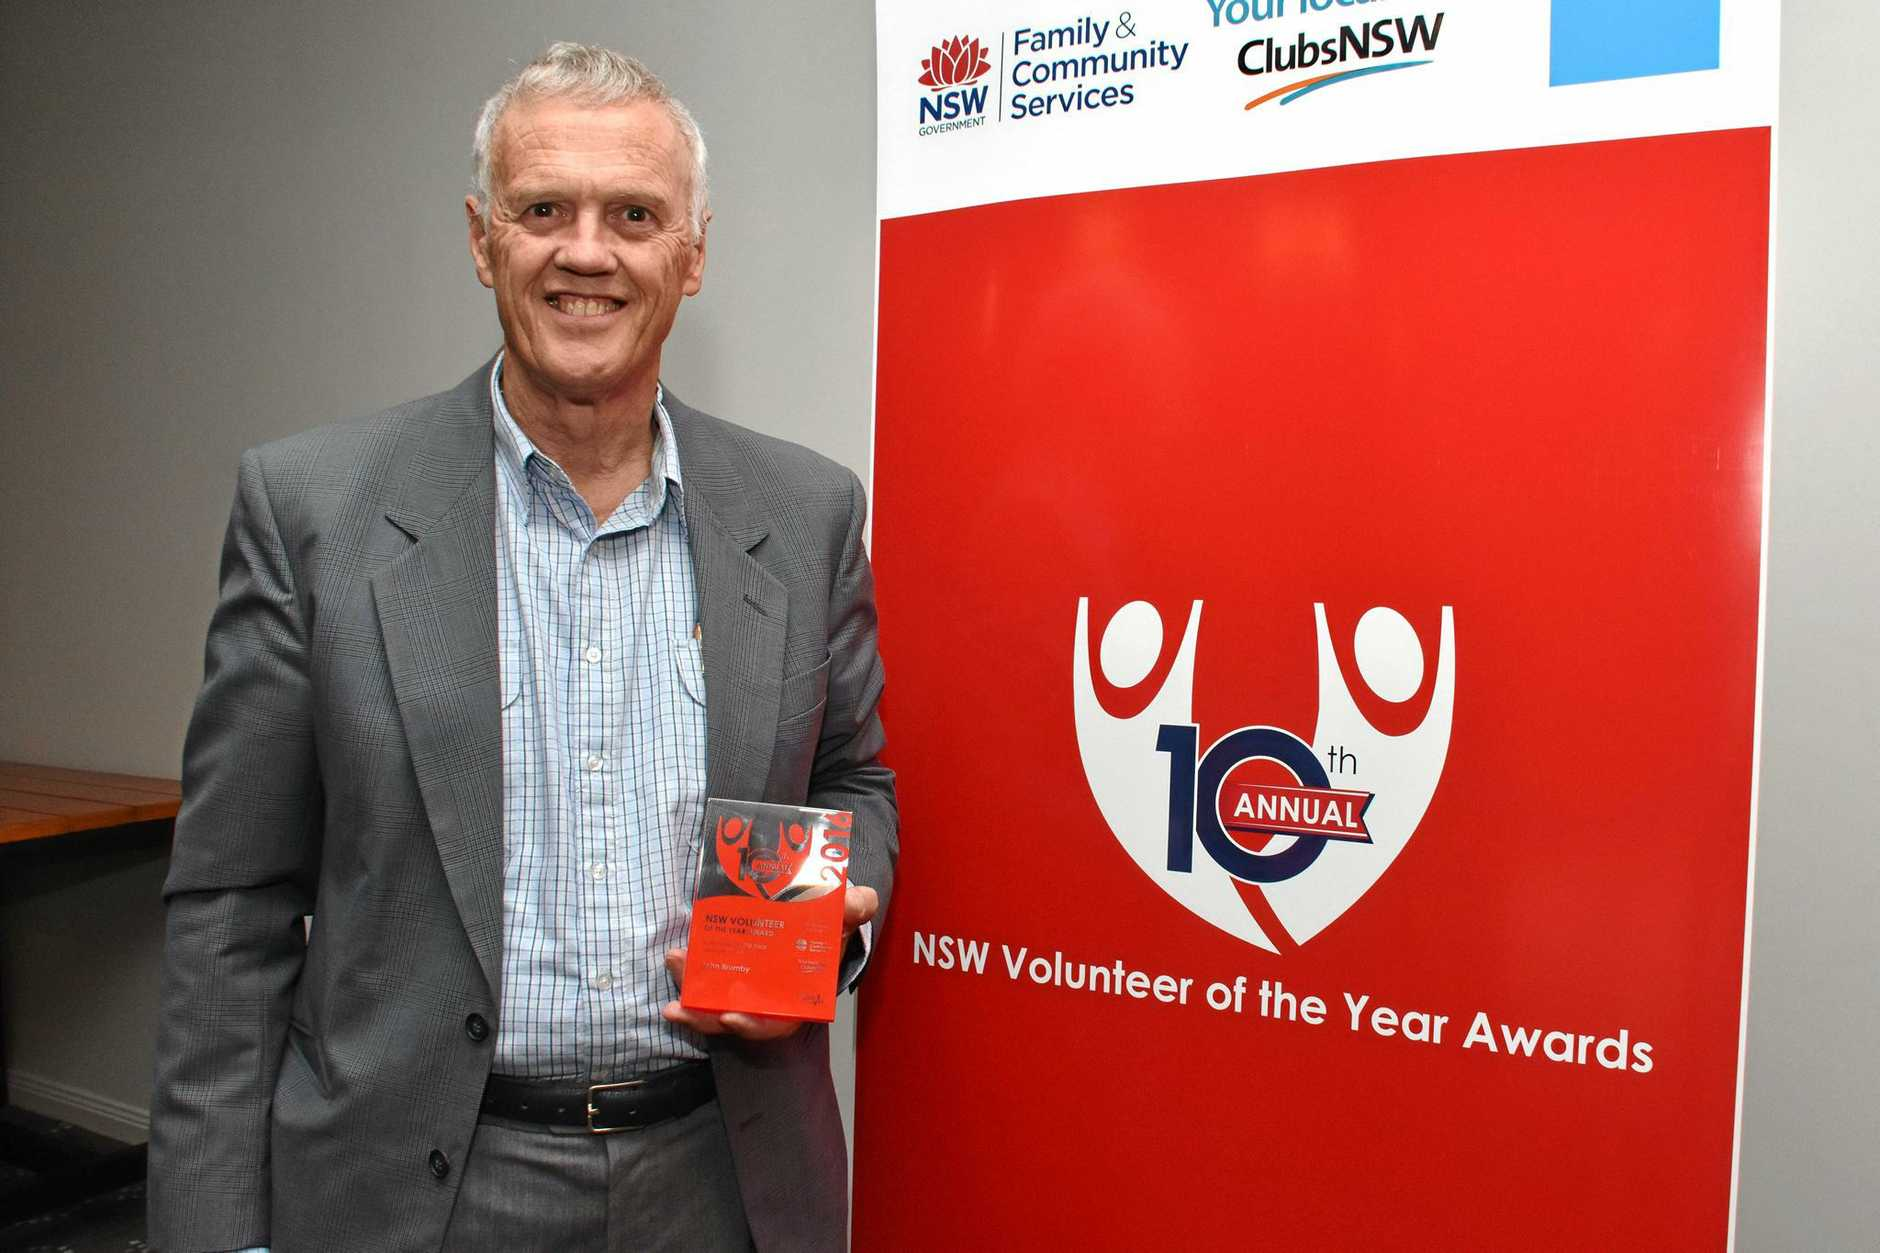 John Brumby receiving his awards for Mid North Coast Volunteer of the Year and Senior Volunteer of the Year for 2016.